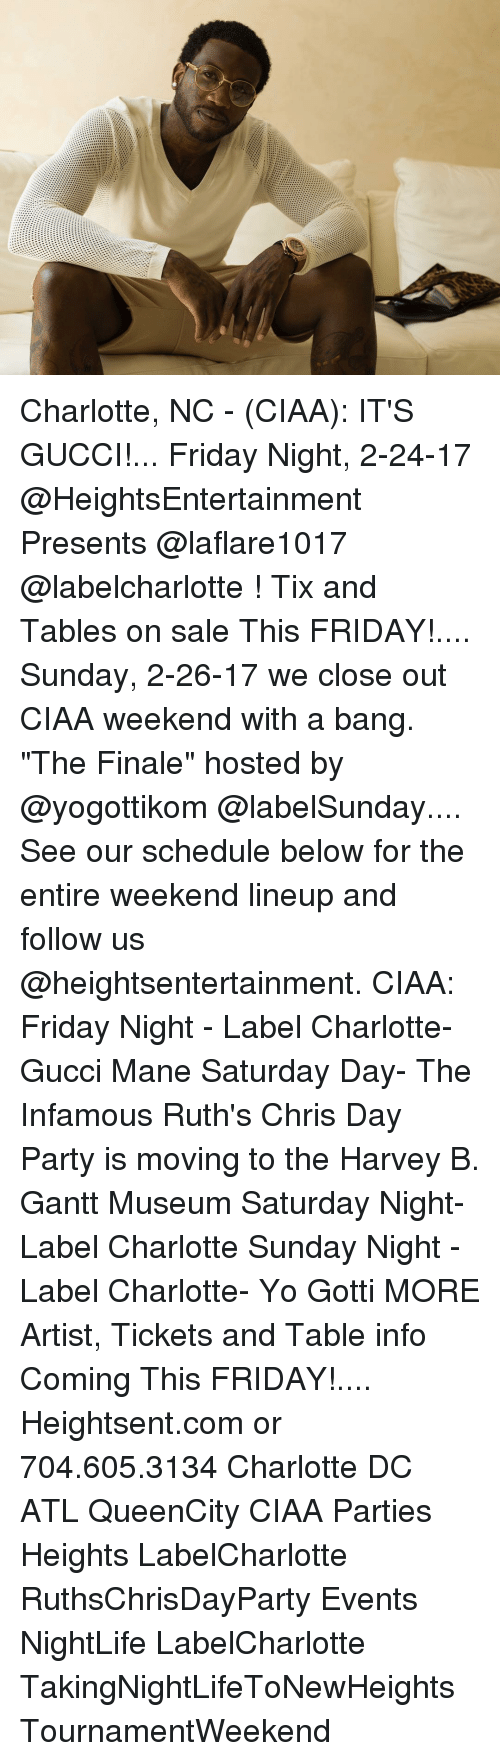 """Gucci, Gucci Mane, and Memes: Charlotte, NC - (CIAA): IT'S GUCCI!... Friday Night, 2-24-17 @HeightsEntertainment Presents @laflare1017 @labelcharlotte ! Tix and Tables on sale This FRIDAY!.... Sunday, 2-26-17 we close out CIAA weekend with a bang. """"The Finale"""" hosted by @yogottikom @labelSunday.... See our schedule below for the entire weekend lineup and follow us @heightsentertainment. CIAA: Friday Night - Label Charlotte- Gucci Mane Saturday Day- The Infamous Ruth's Chris Day Party is moving to the Harvey B. Gantt Museum Saturday Night- Label Charlotte Sunday Night - Label Charlotte- Yo Gotti MORE Artist, Tickets and Table info Coming This FRIDAY!.... Heightsent.com or 704.605.3134 Charlotte DC ATL QueenCity CIAA Parties Heights LabelCharlotte RuthsChrisDayParty Events NightLife LabelCharlotte TakingNightLifeToNewHeights TournamentWeekend"""